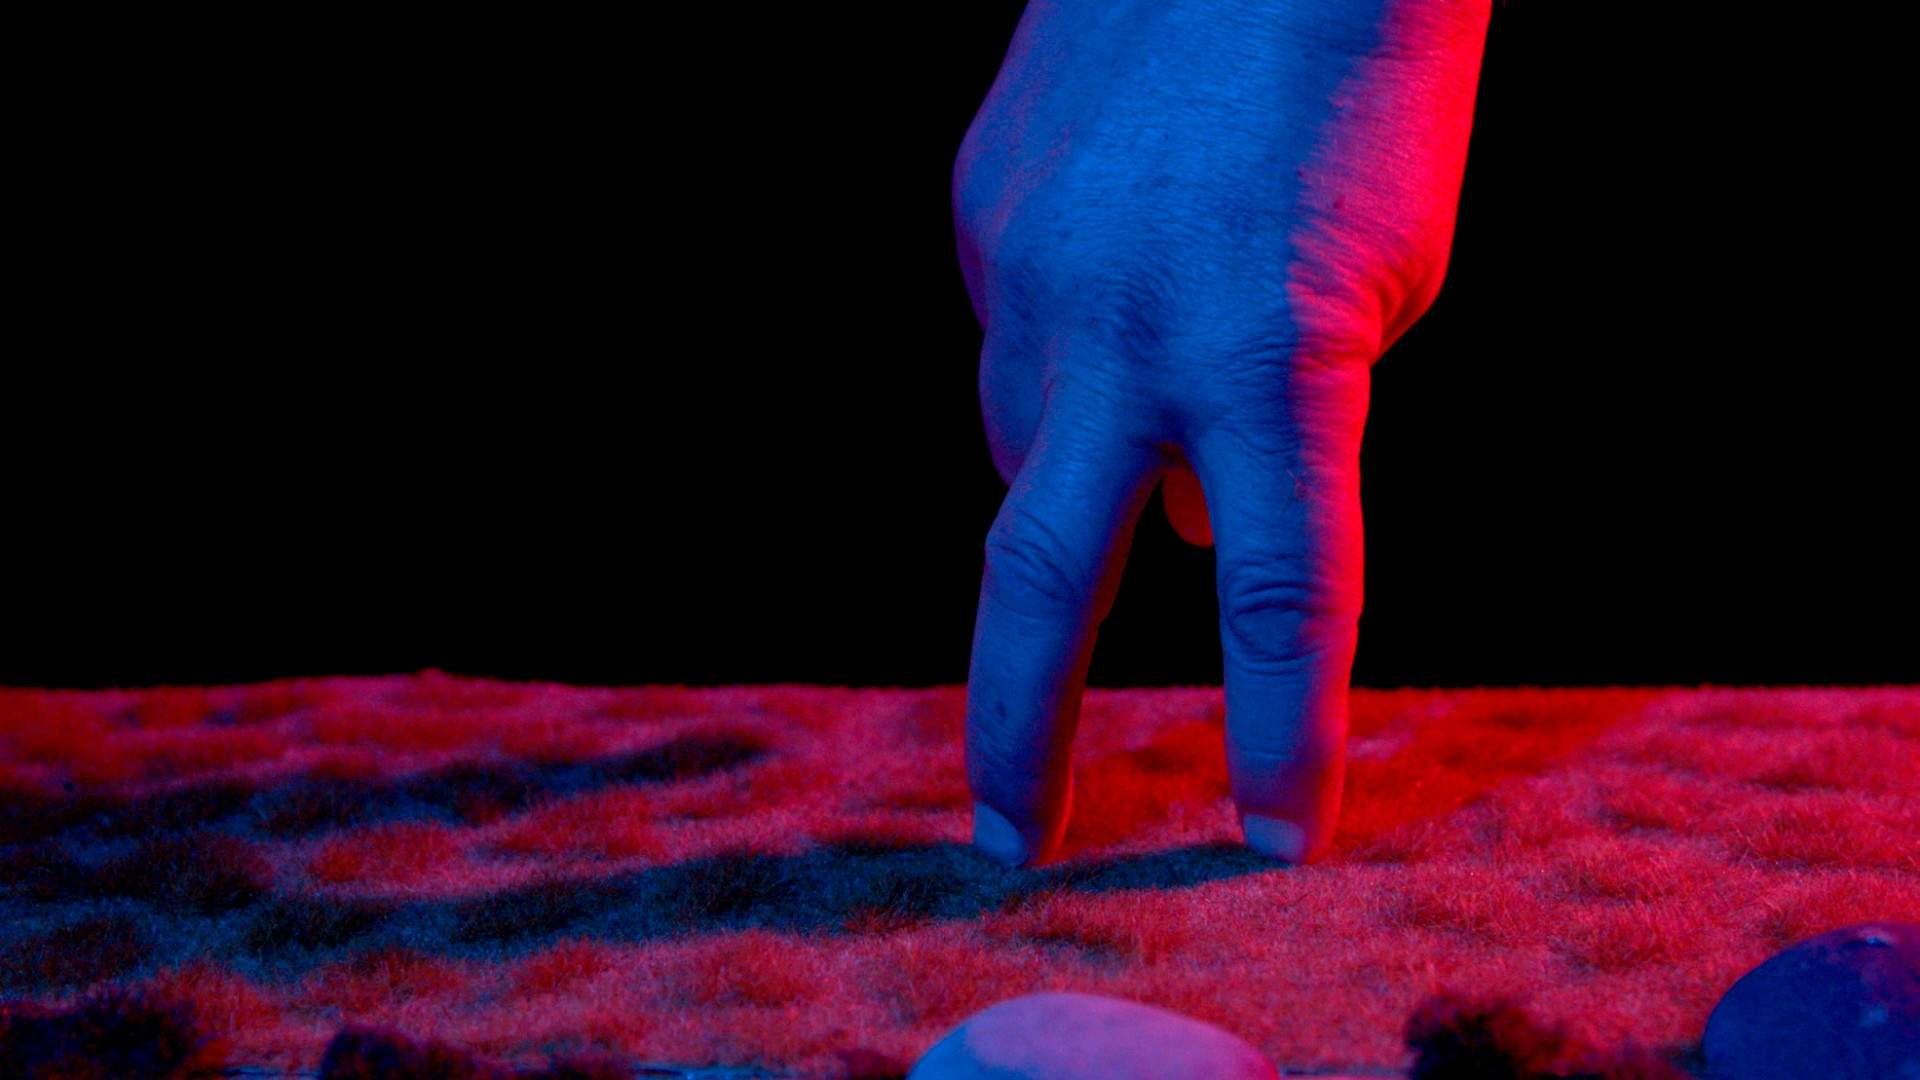 Video still featuring hand with two fingers and shadow, coloured by blue light and pink surface